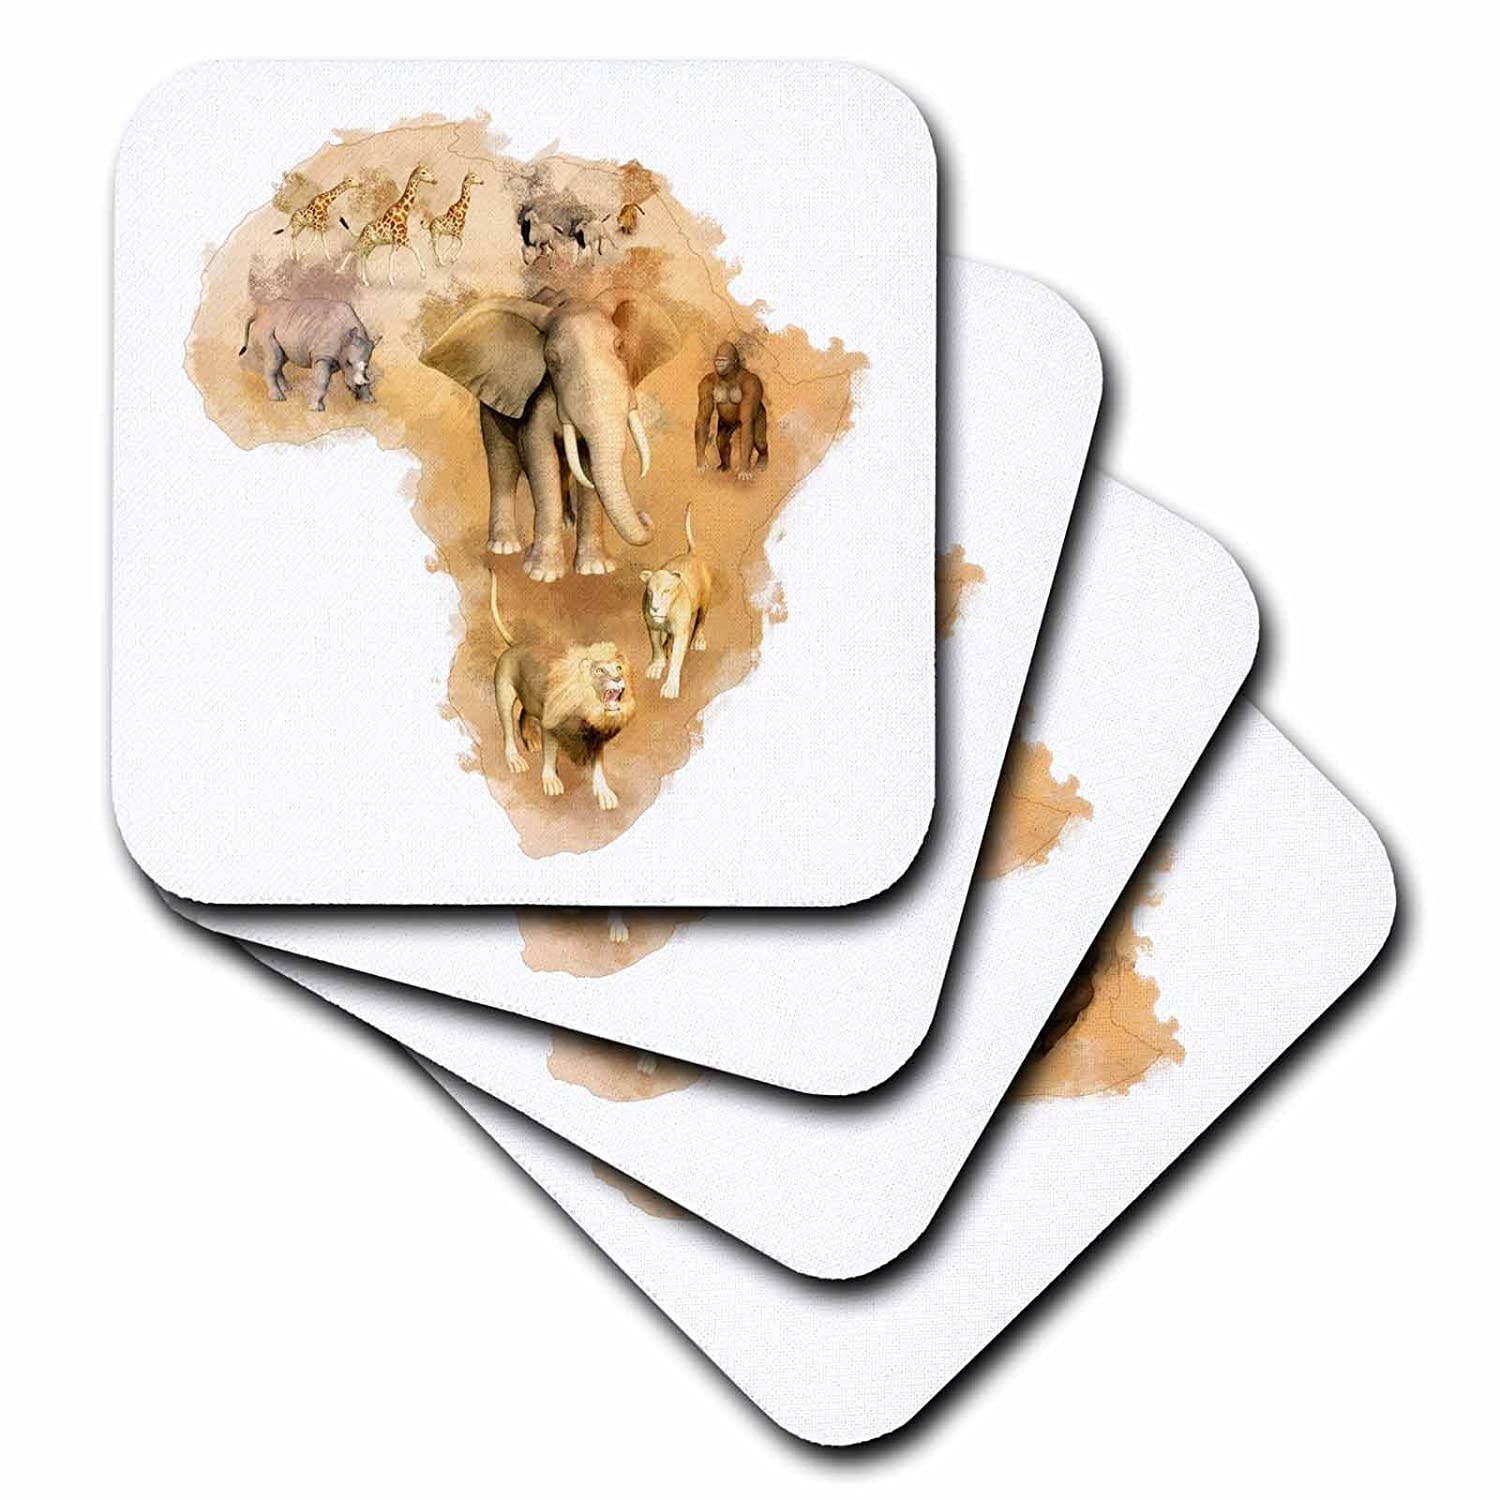 3dRose cst/_38675/_4 Africa Montage with Animals Ceramic Tile Coasters Set of 8